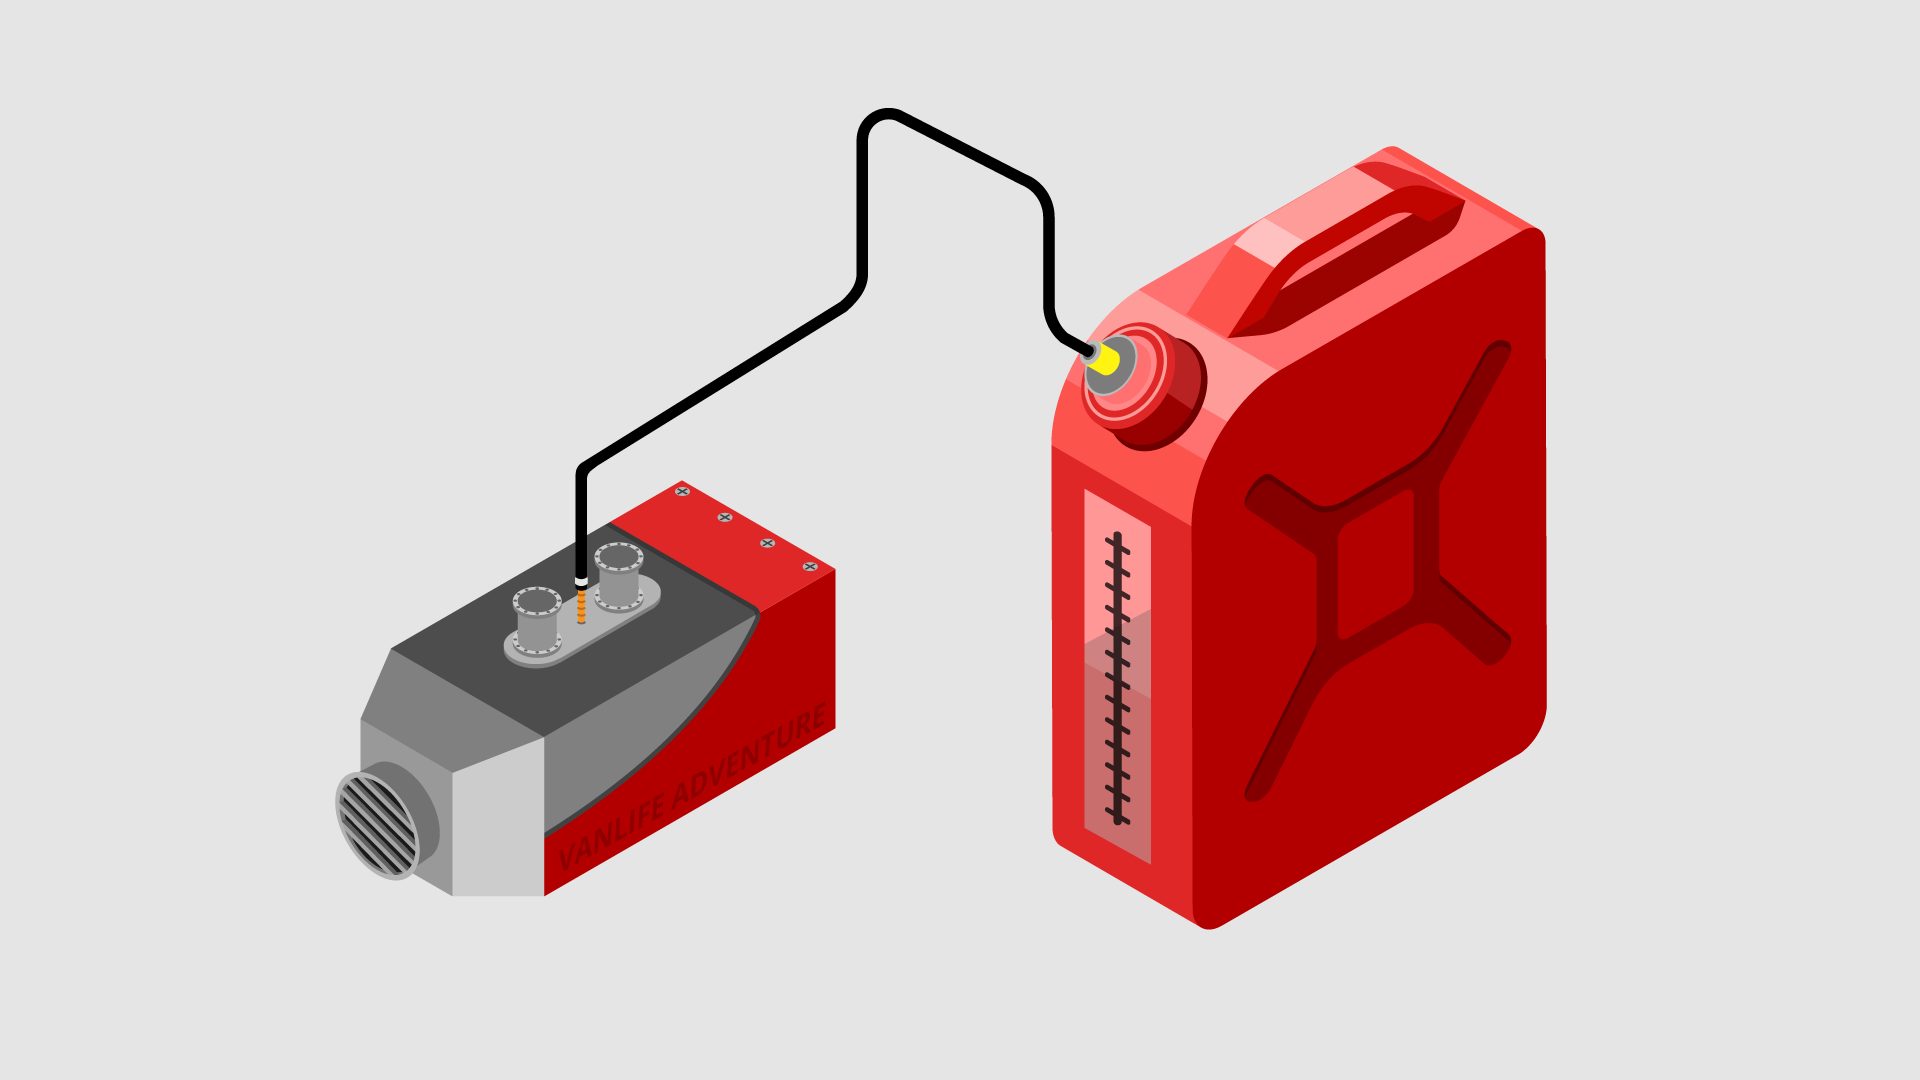 a diesel night heater system connected to a fuel tank illustration